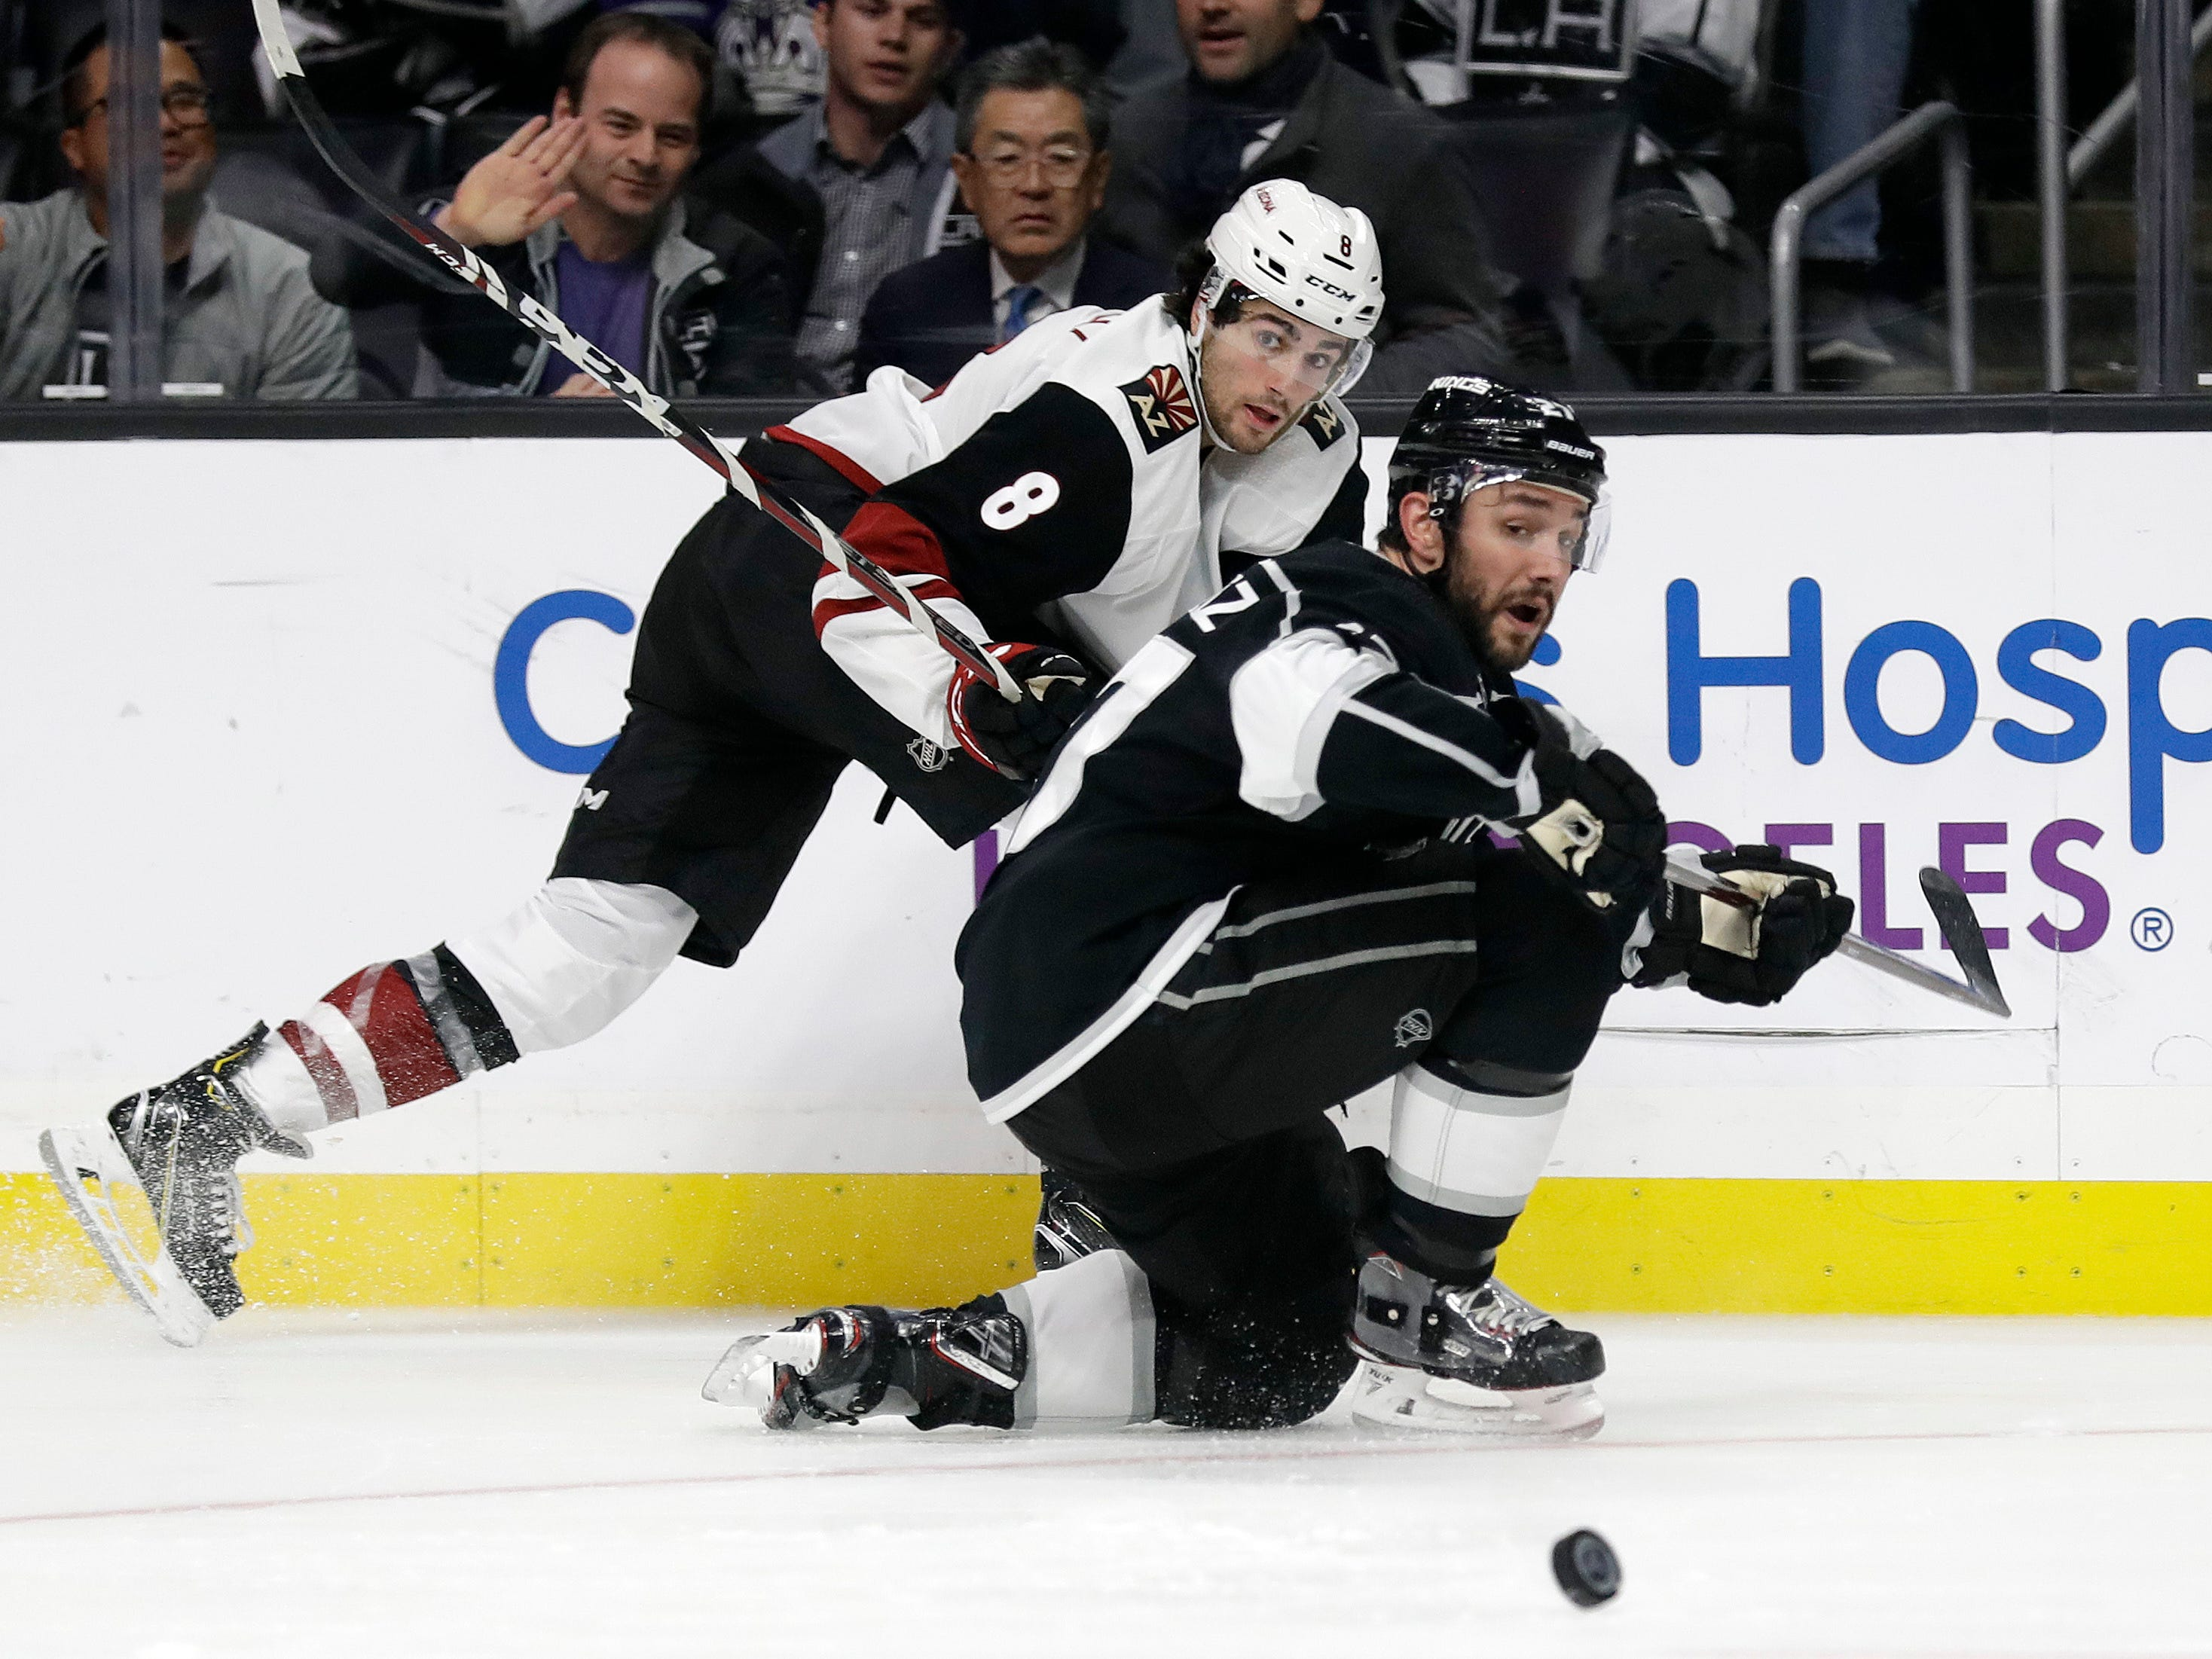 Arizona Coyotes' Nick Schmaltz, top, passes as Los Angeles Kings' Alec Martinez defends during the third period of an NHL hockey game Tuesday, Dec. 4, 2018, in Los Angeles.